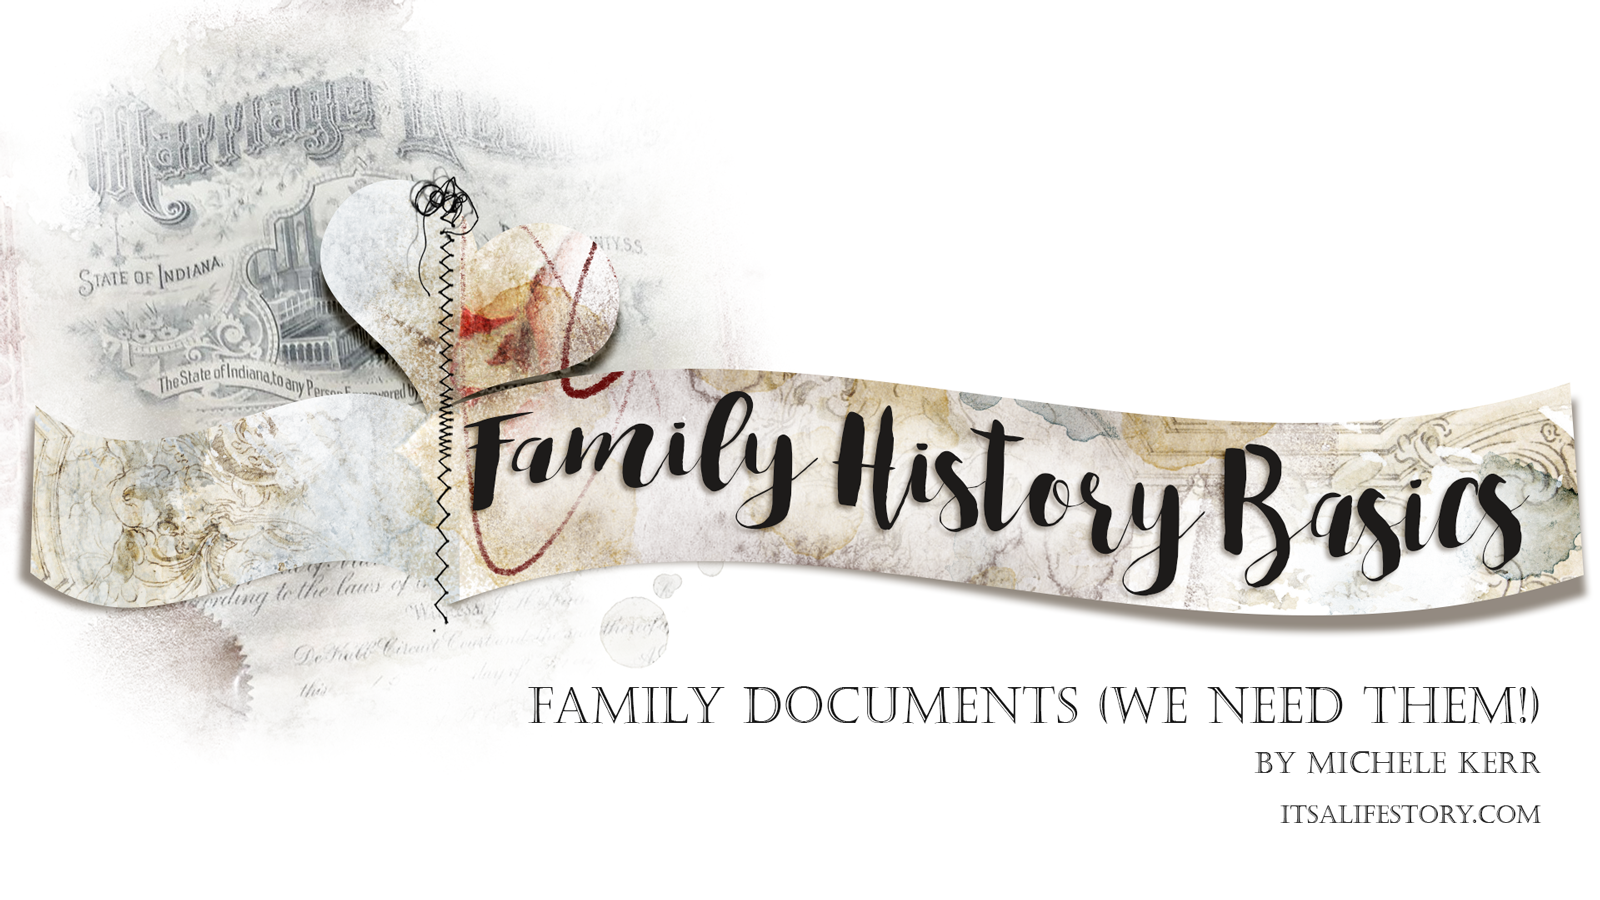 ItsALifeStory.com _ FAMILY HISTORY BASICS - Family Documents - We Need Them